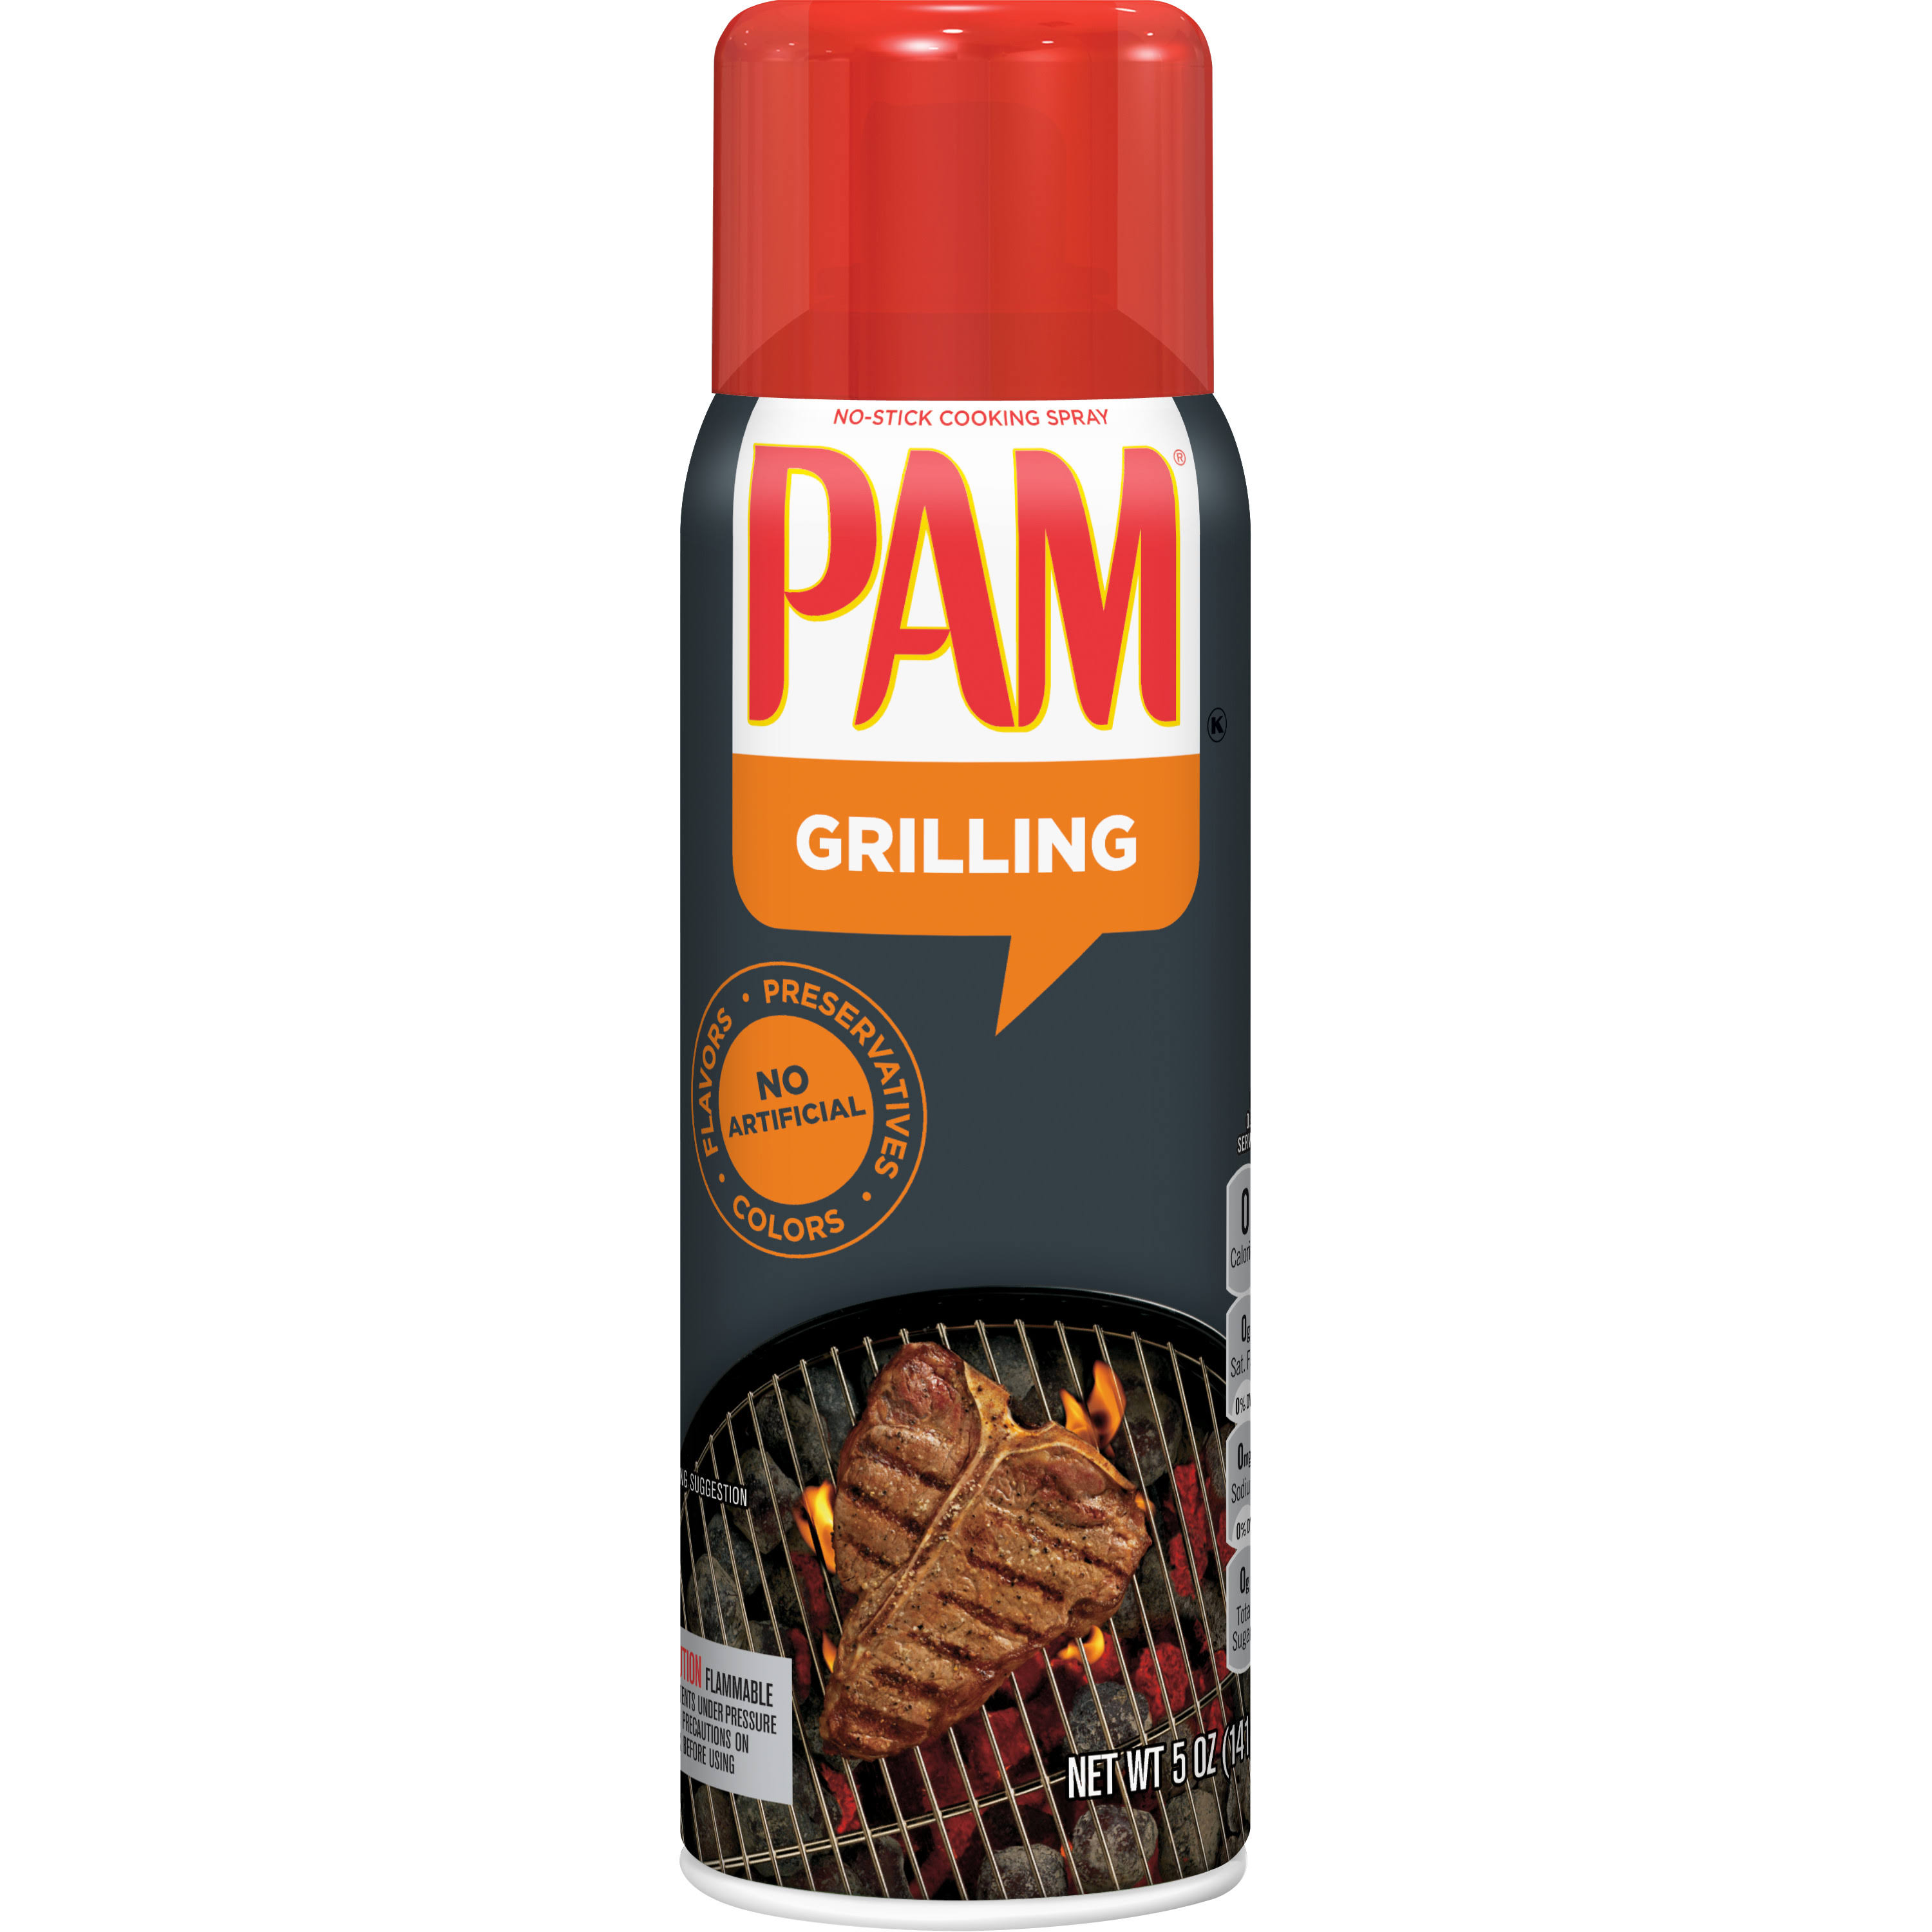 Pam Grilling No-Stick Cooking Spray - 5oz